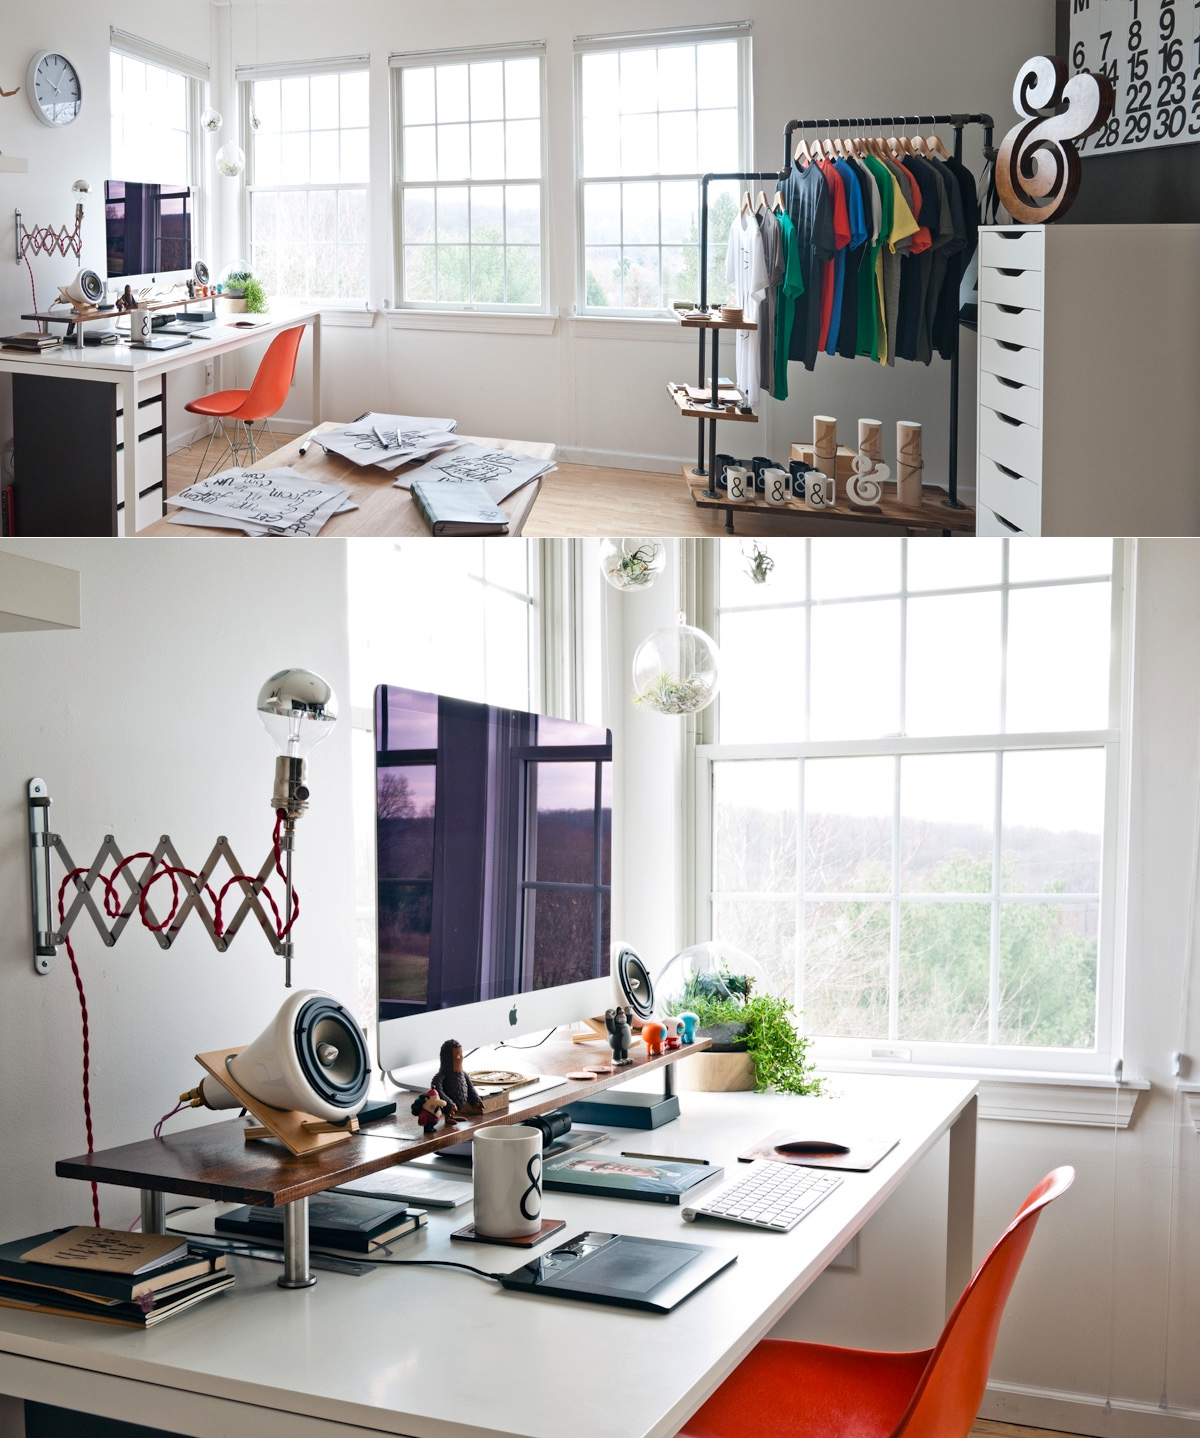 Home Workspace Design Best Kitchen Gallery | Rachelxblog home office ...